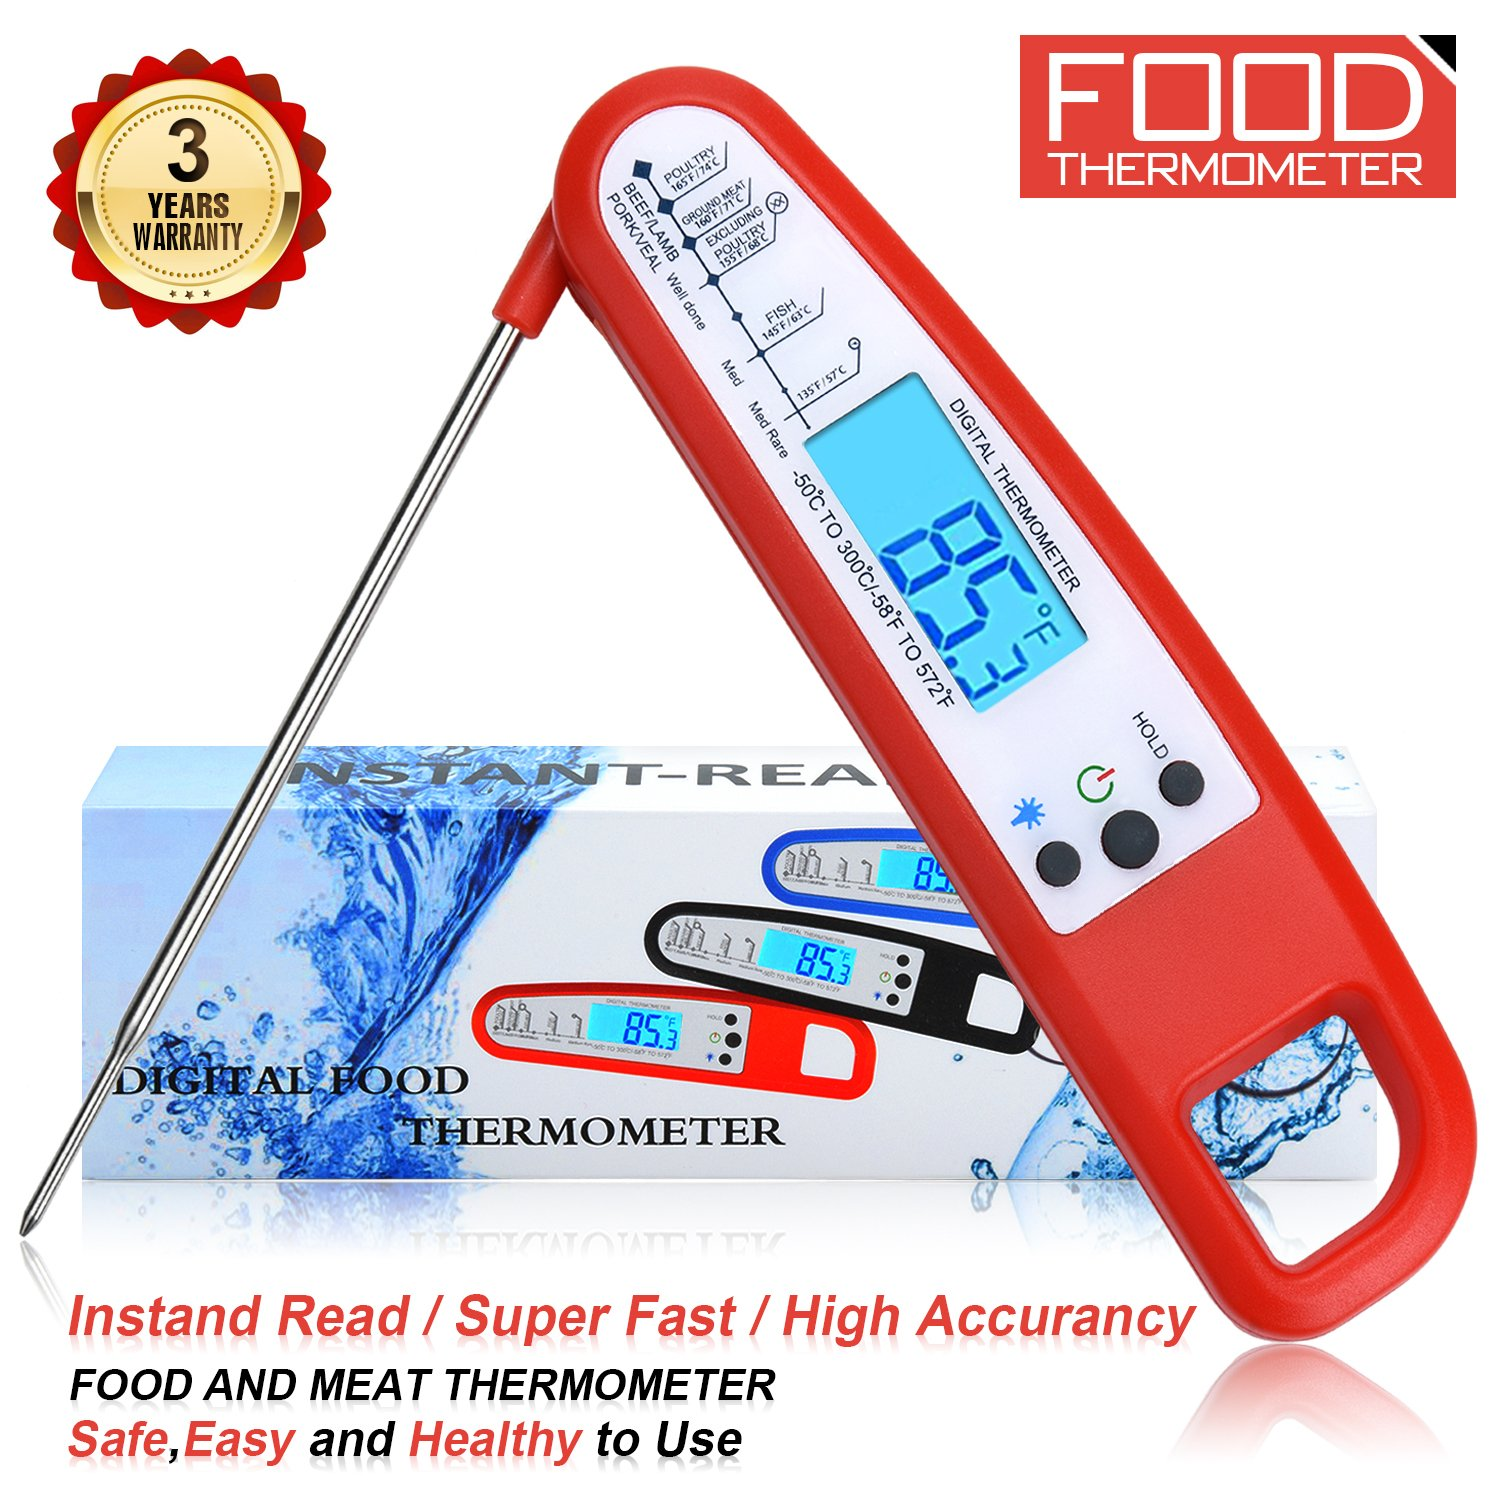 Meat Thermometer Food Thermometer Instant Read Thermometer Cooking Thermometer Grill Thermometer BBQ Thermometer High Accuracy Kitchen Thermometer Digital Thermometer (Red288)